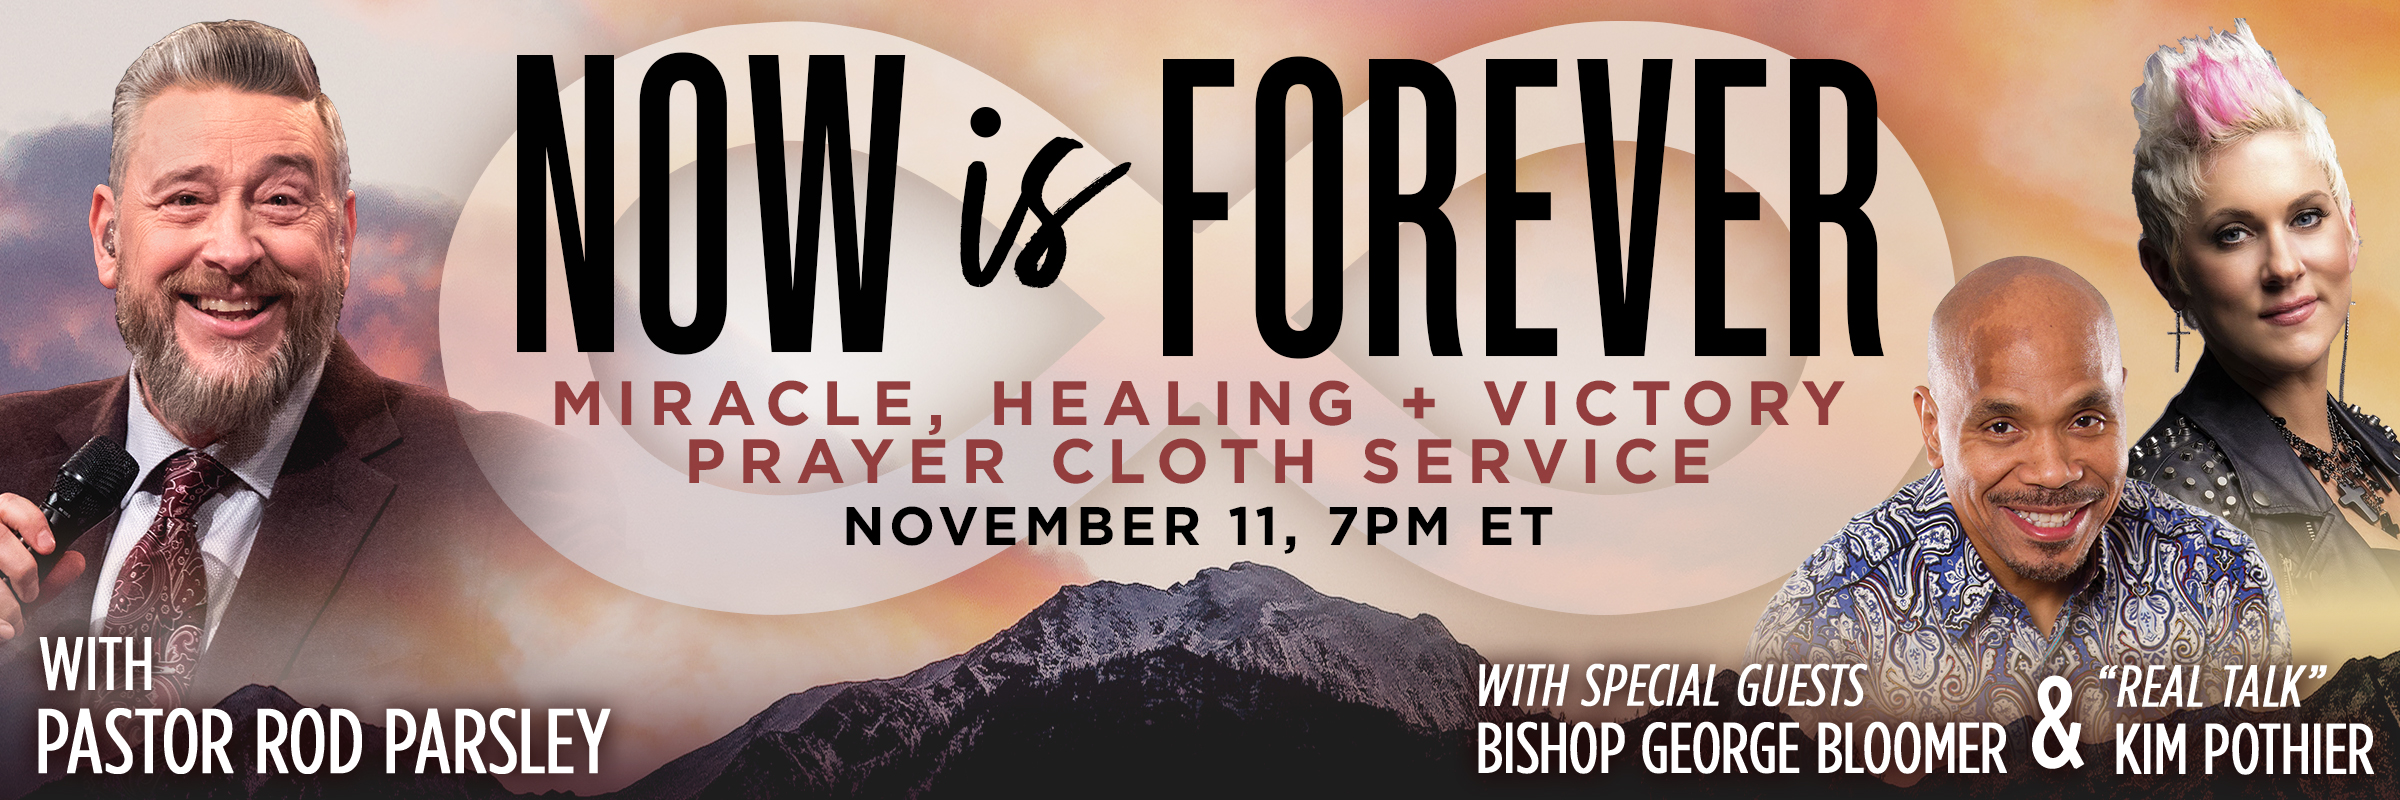 Worldwide Miracle, Healing and Victory Prayer Cloth Service | Sunday, November 11